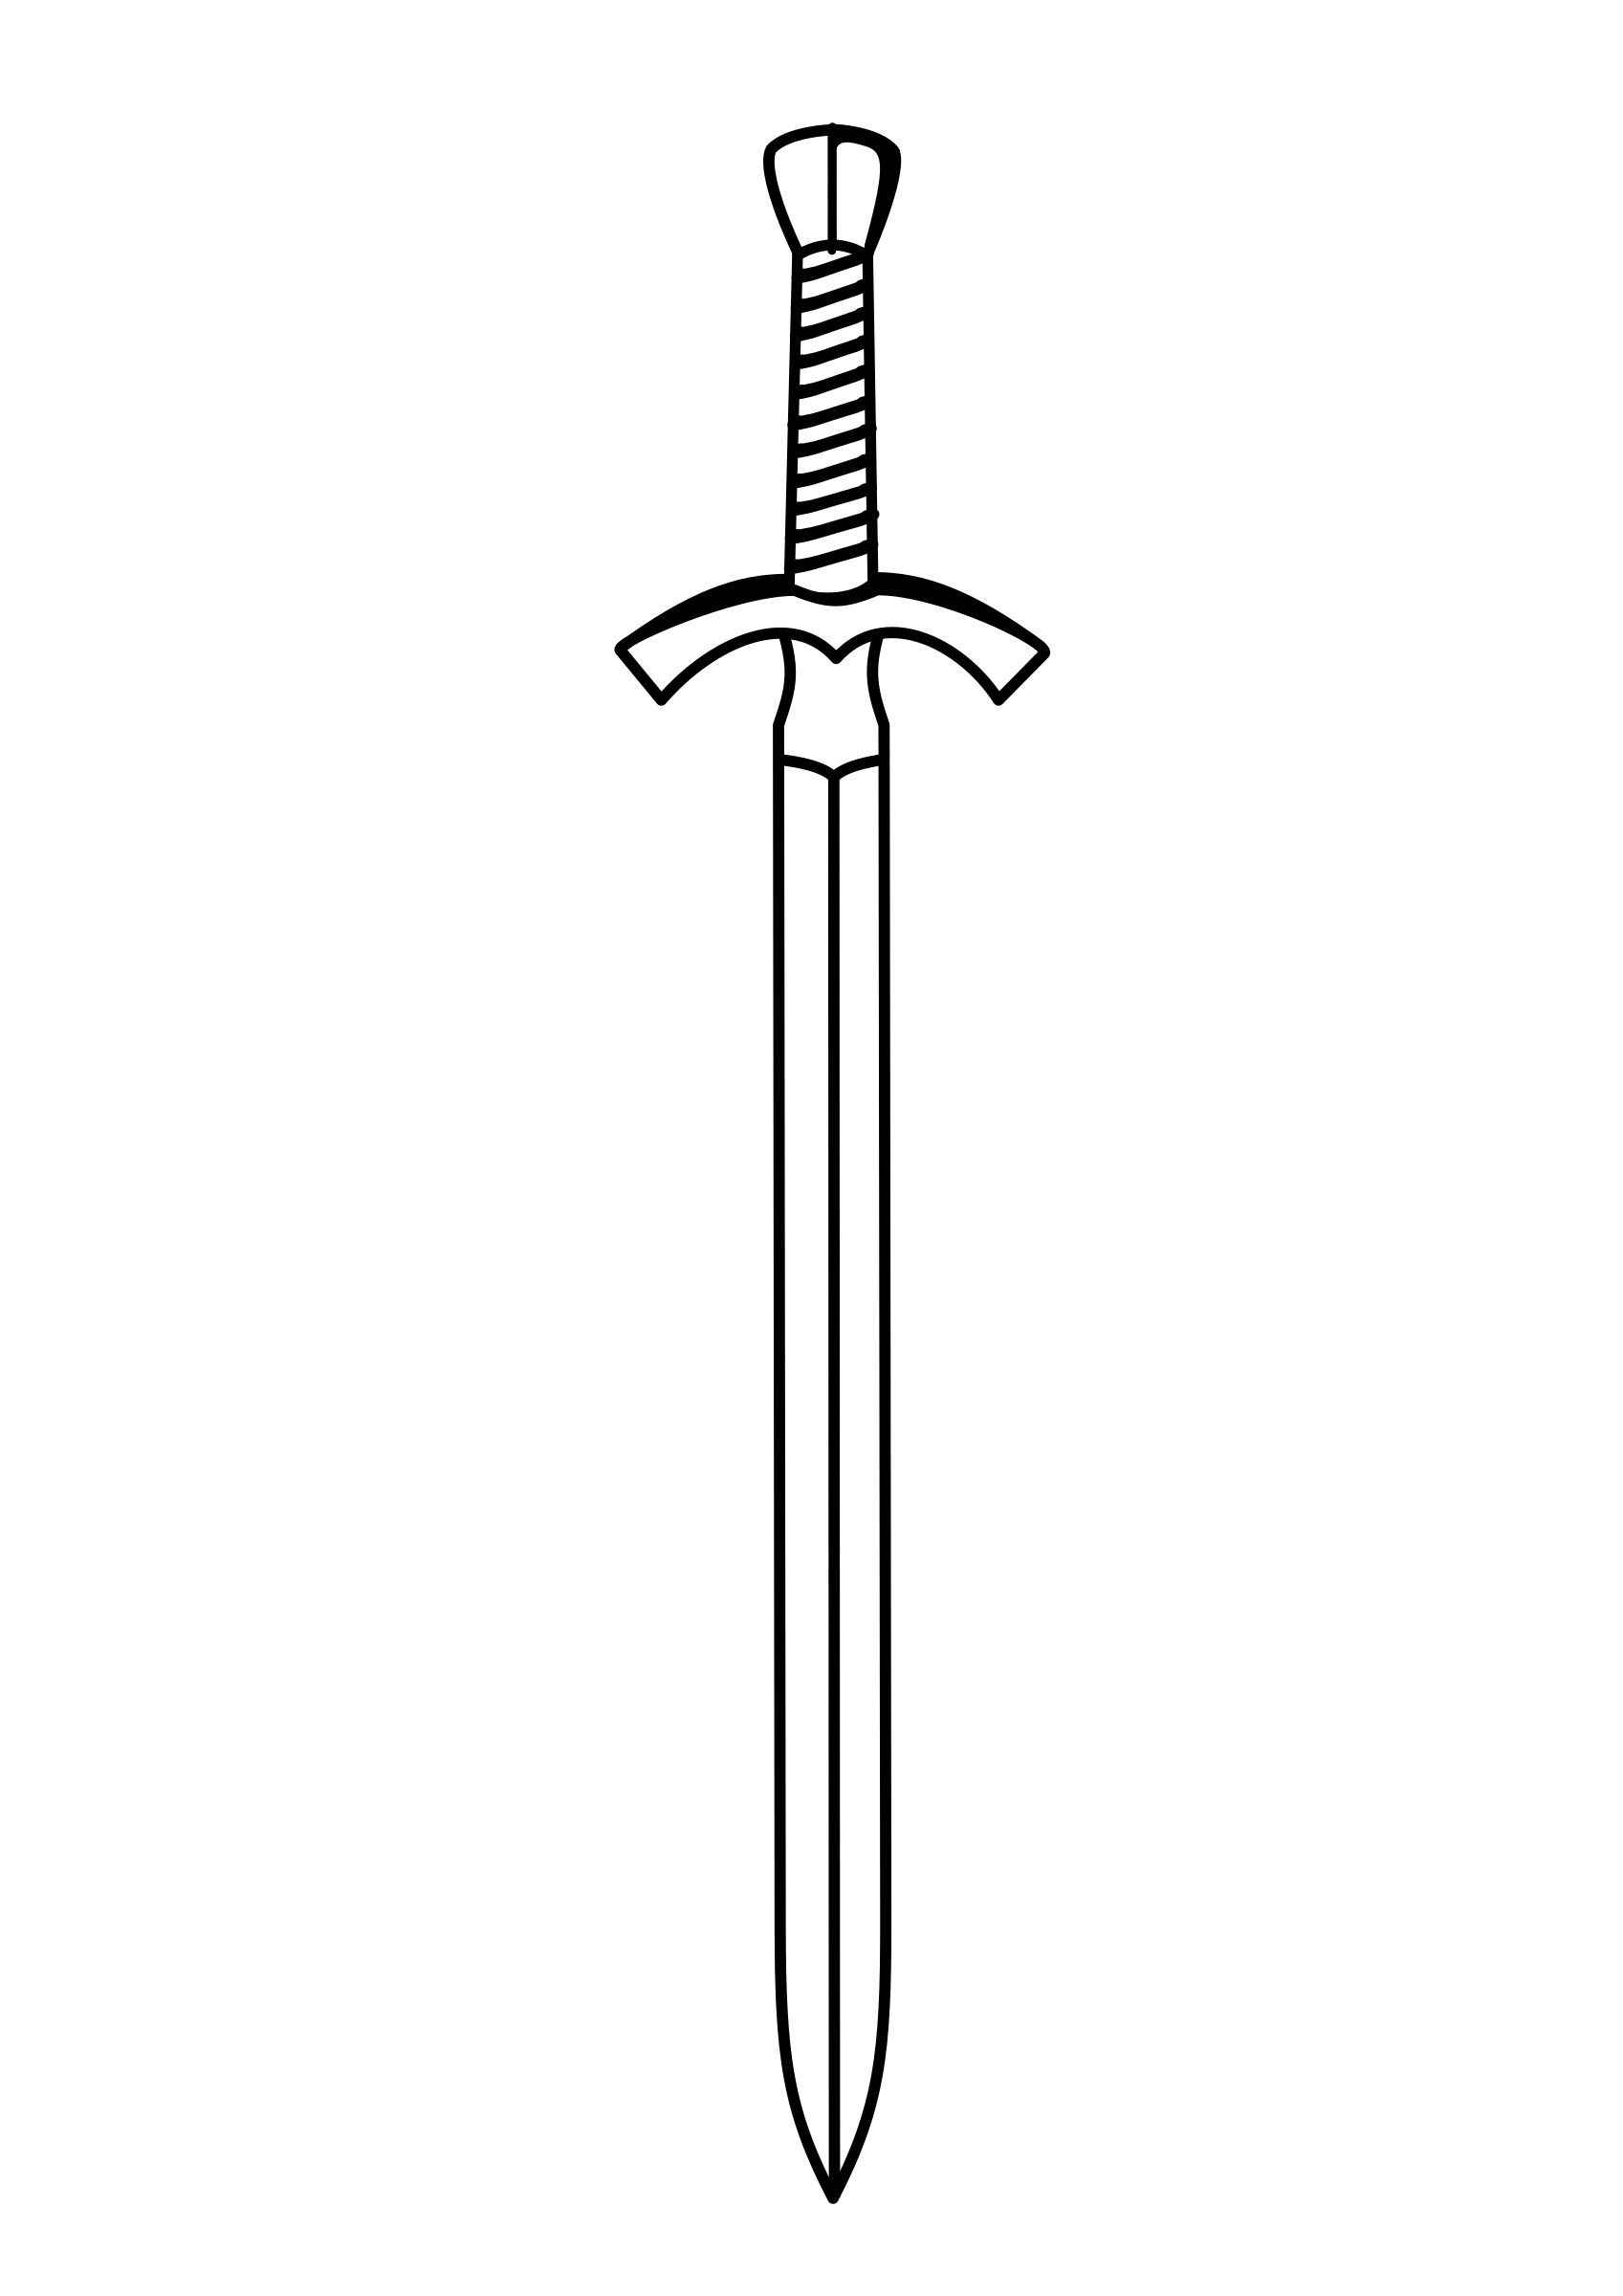 sword outline clipart - Clipground